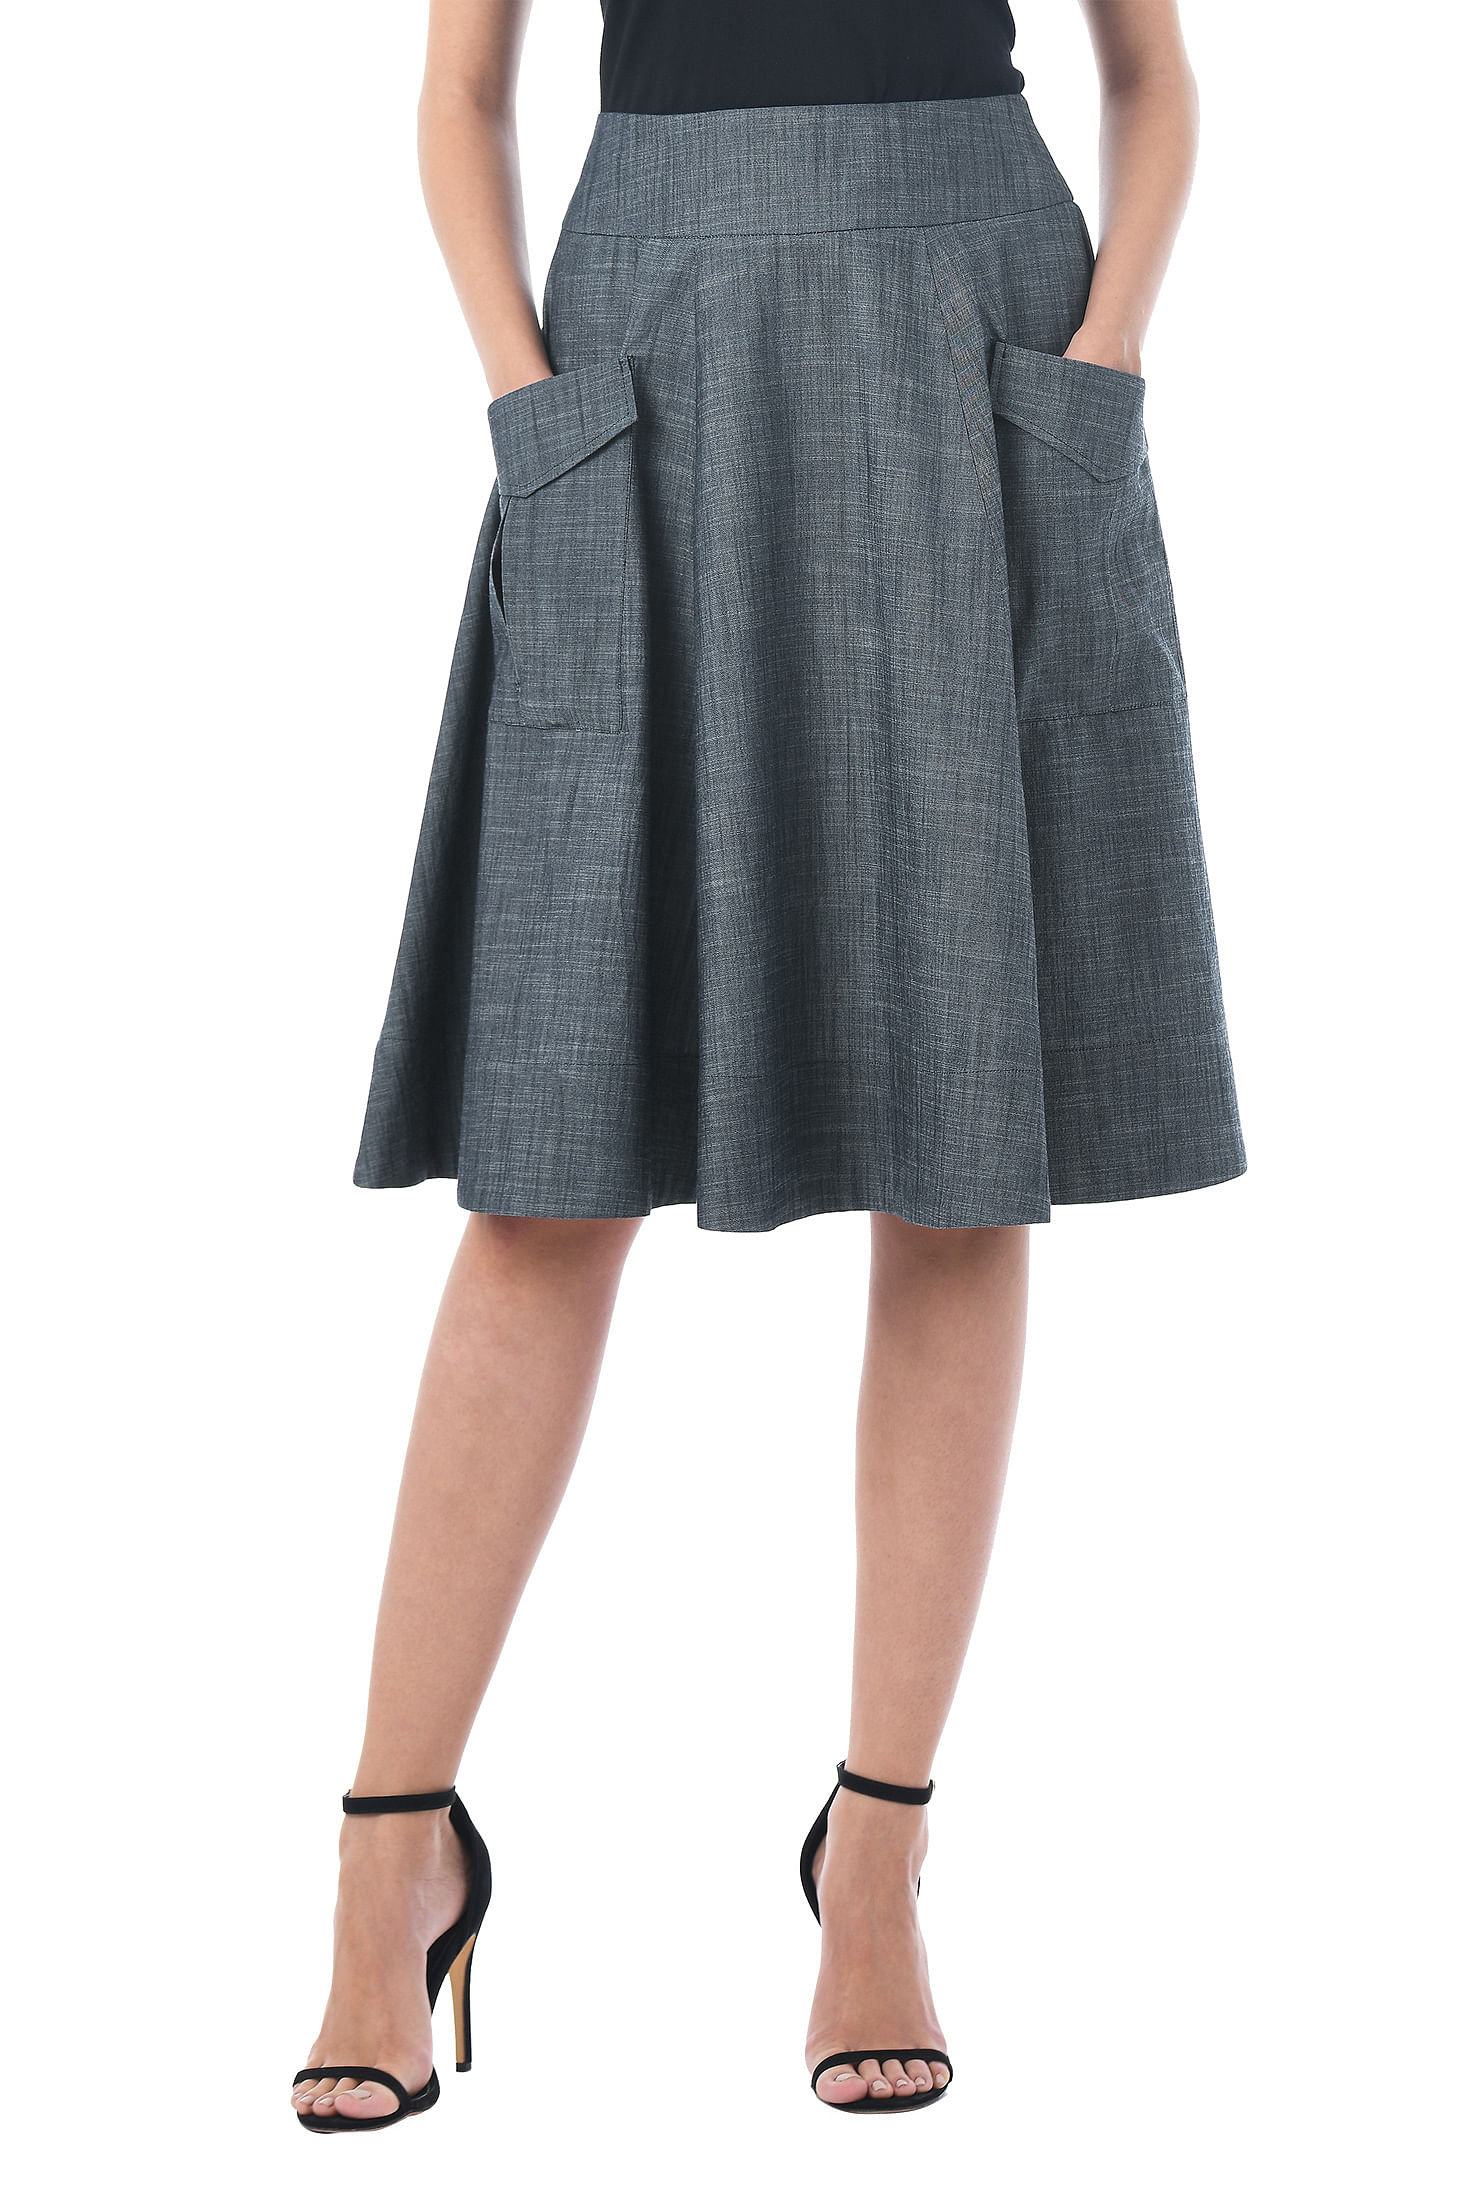 21a0df1aa0 banded waist skirts, below knee length skirts, cotton skirts, Feminine  Skirts,